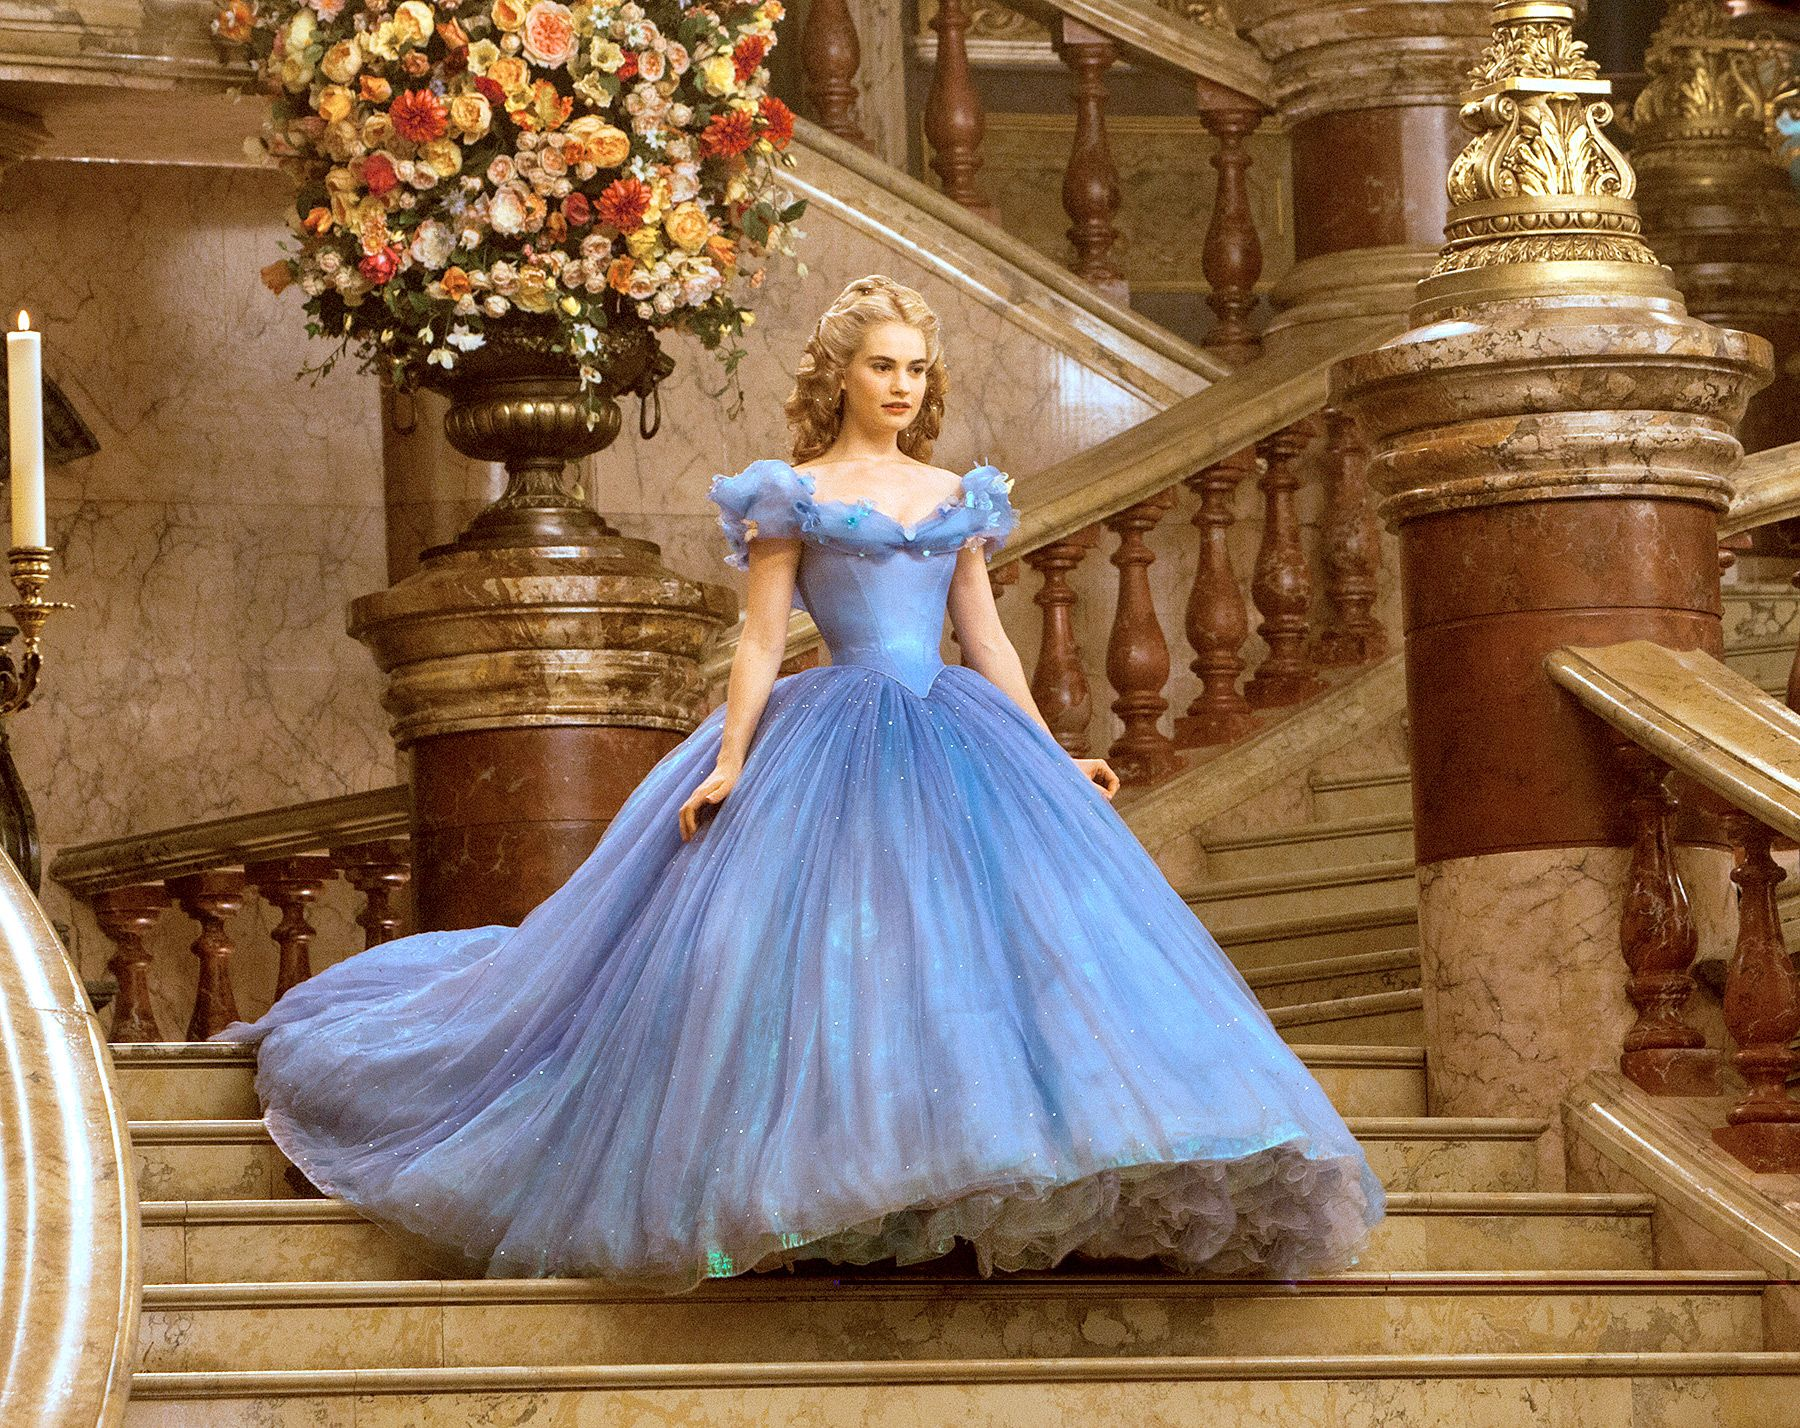 Ouch Lily James Went On A Liquid Diet To Wear Cinderella Corset Dress